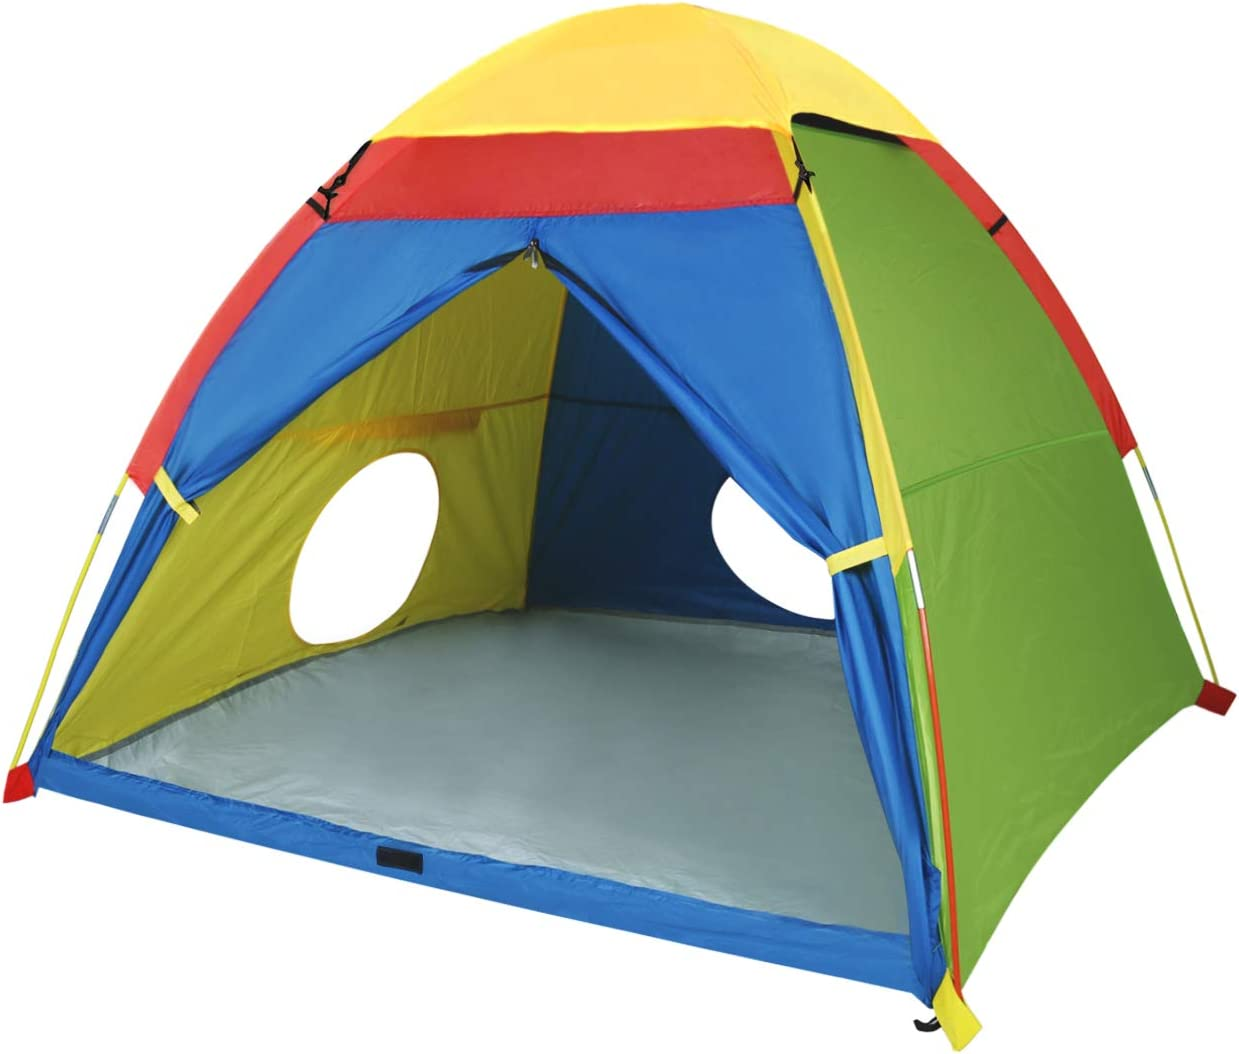 """MountRhino Kids Play Tent & Playhouse,Kids Pop Up Tent, Children Camping Playhouse, Indoor/Outdoor Children Playhouse for Boys Girls, Large Space& Rainbow Color – 60""""x60""""x47"""" (Large Space)"""